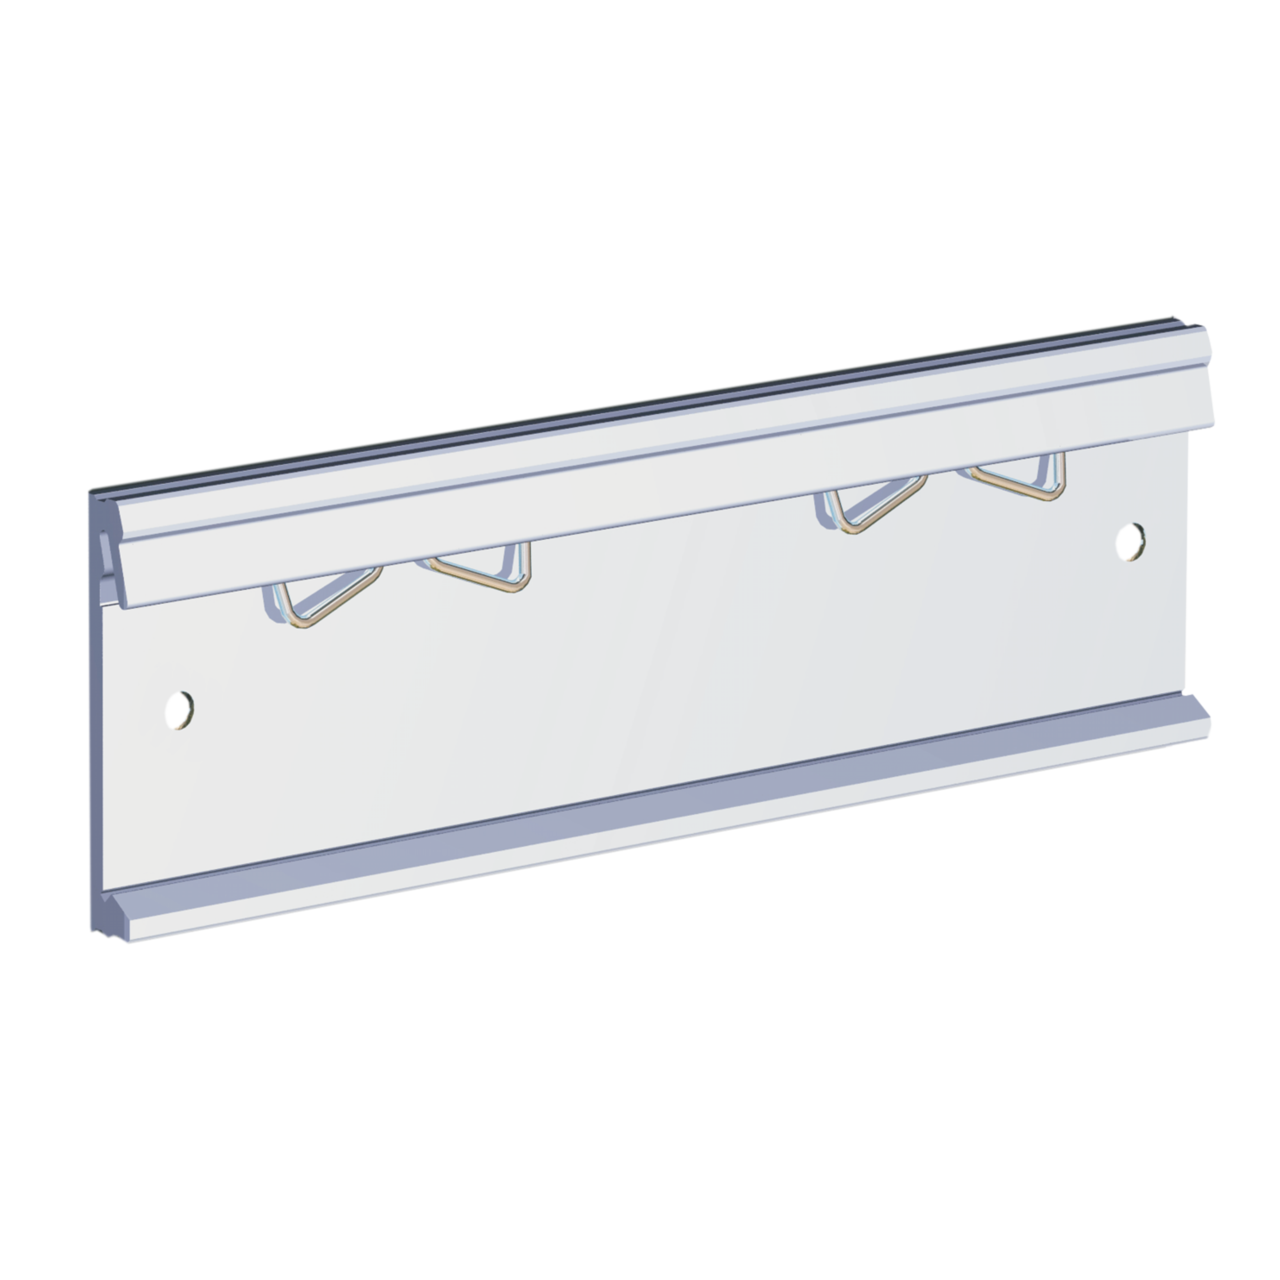 Image for Adaptor for horizontal rail mounting from nVent SCHROFF | Europe, Middle East, Africa and India